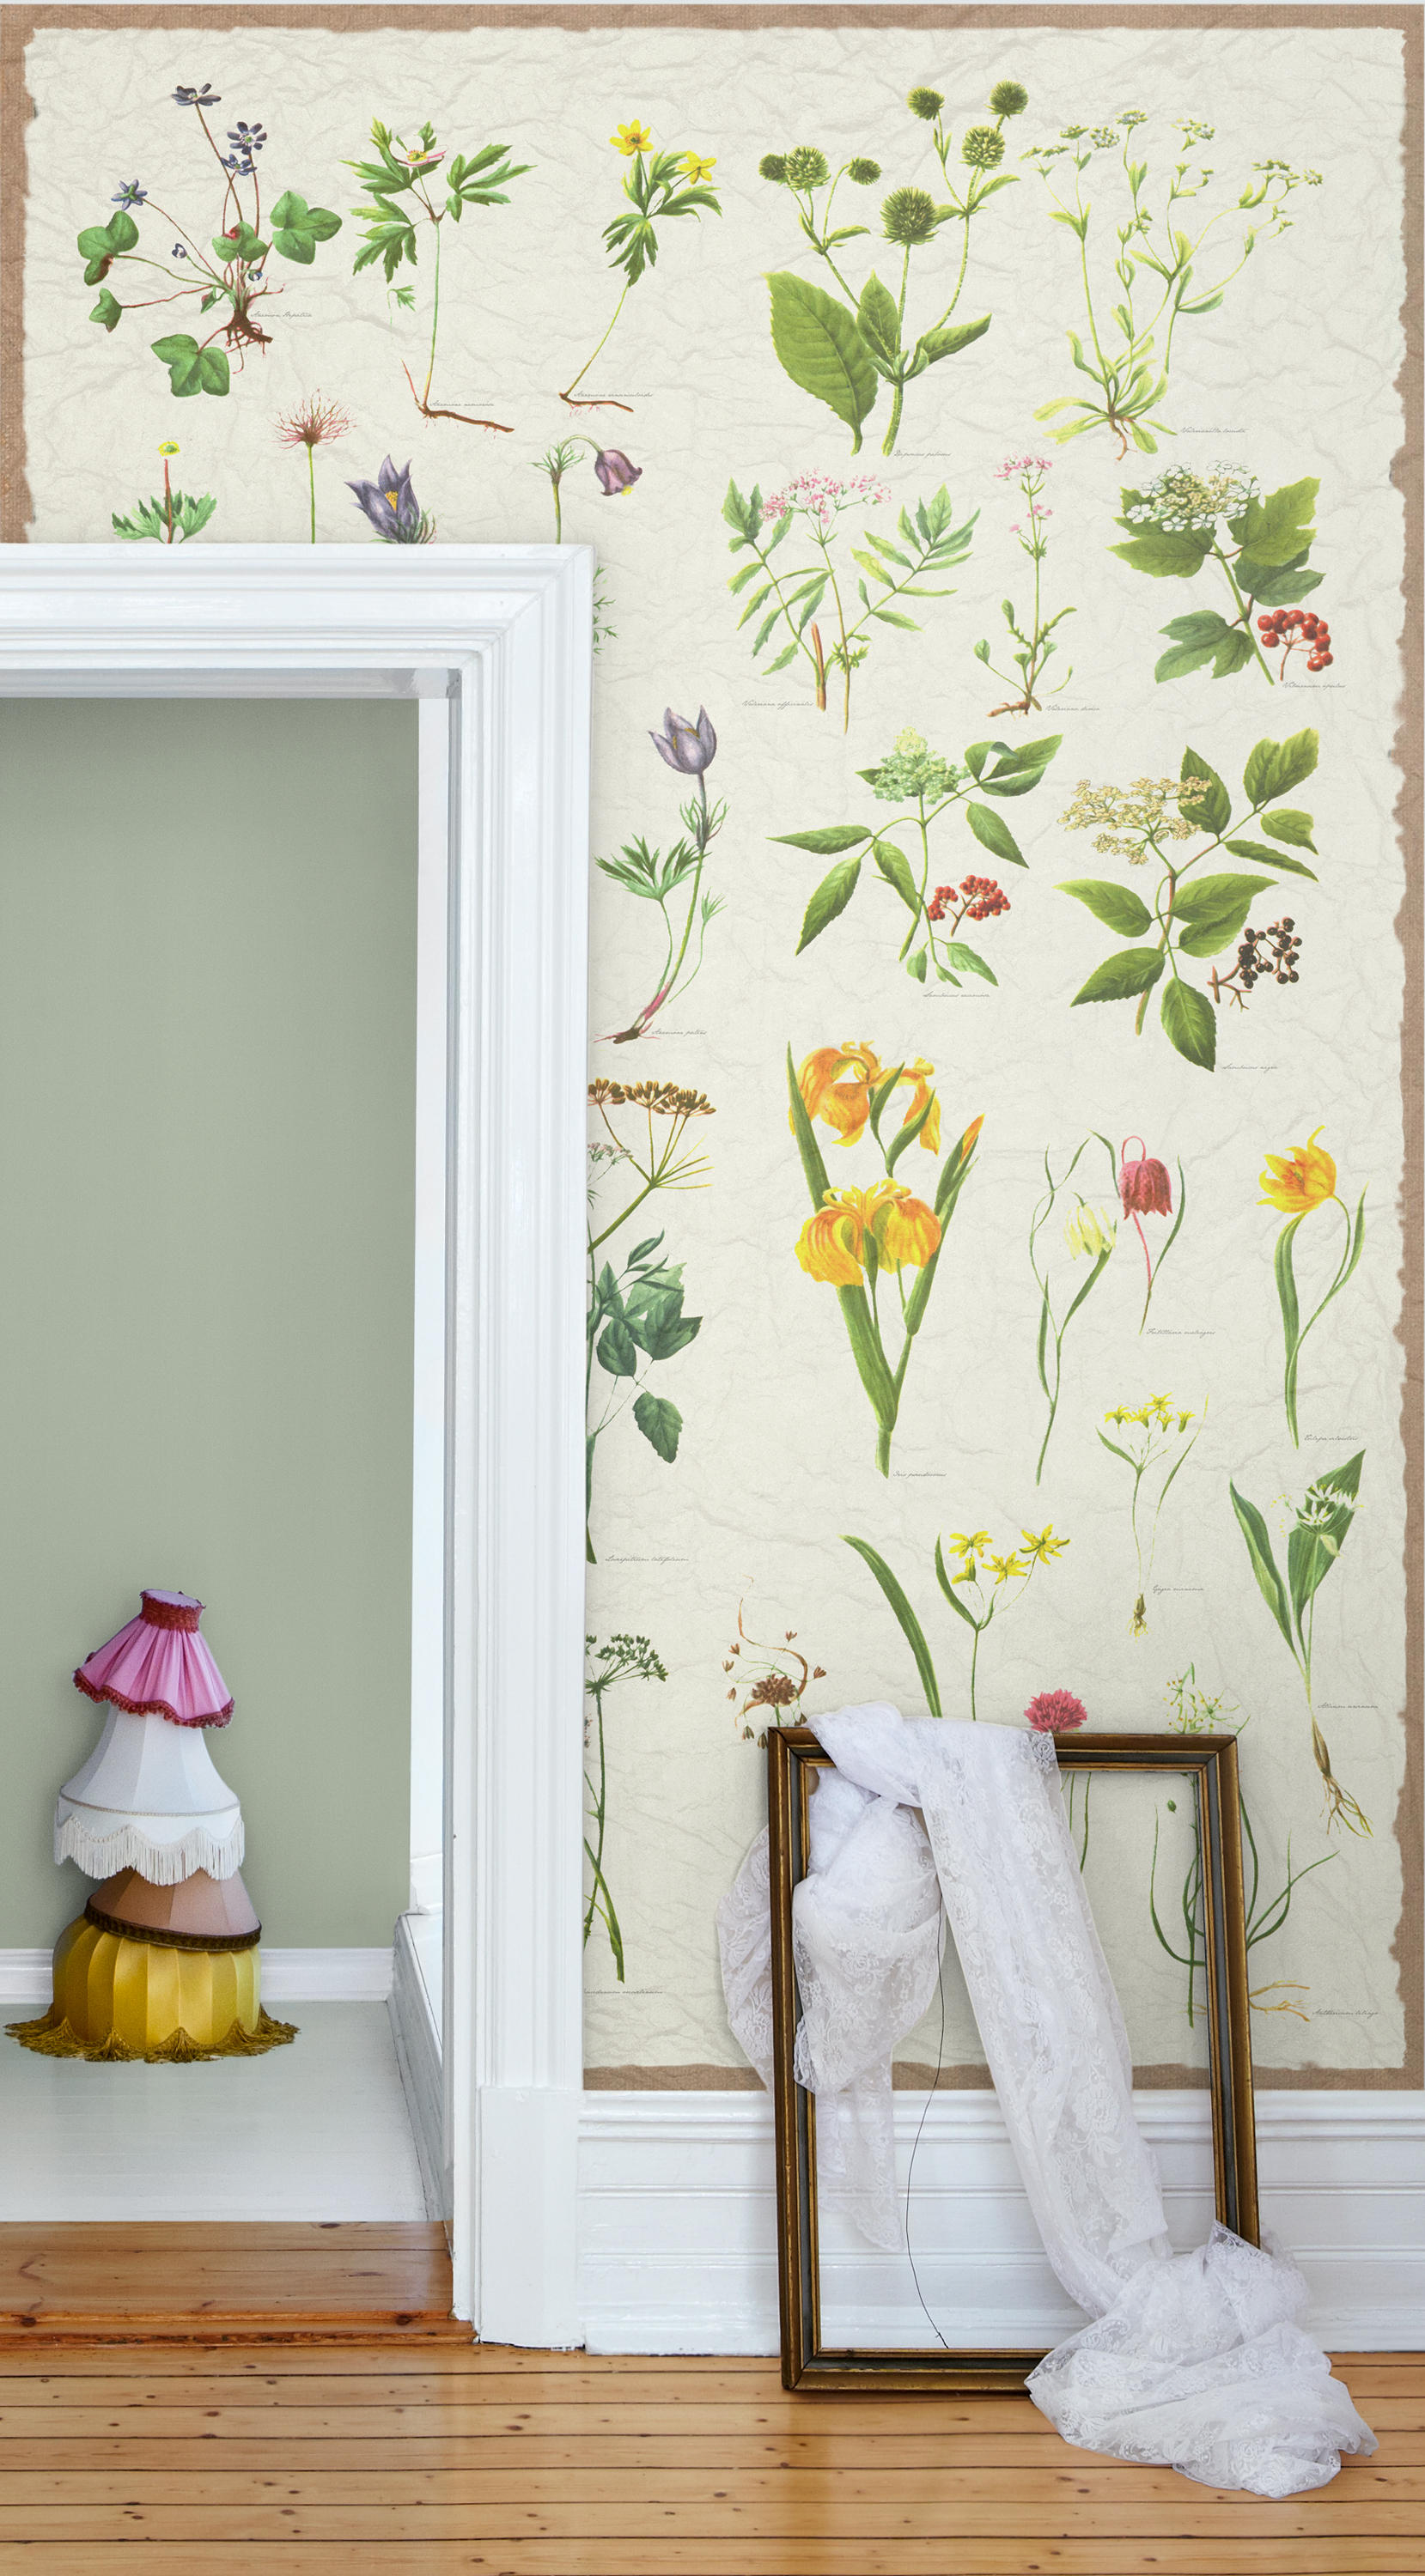 Nostalgic Wall Street Bespoke Wall Coverings From Mr